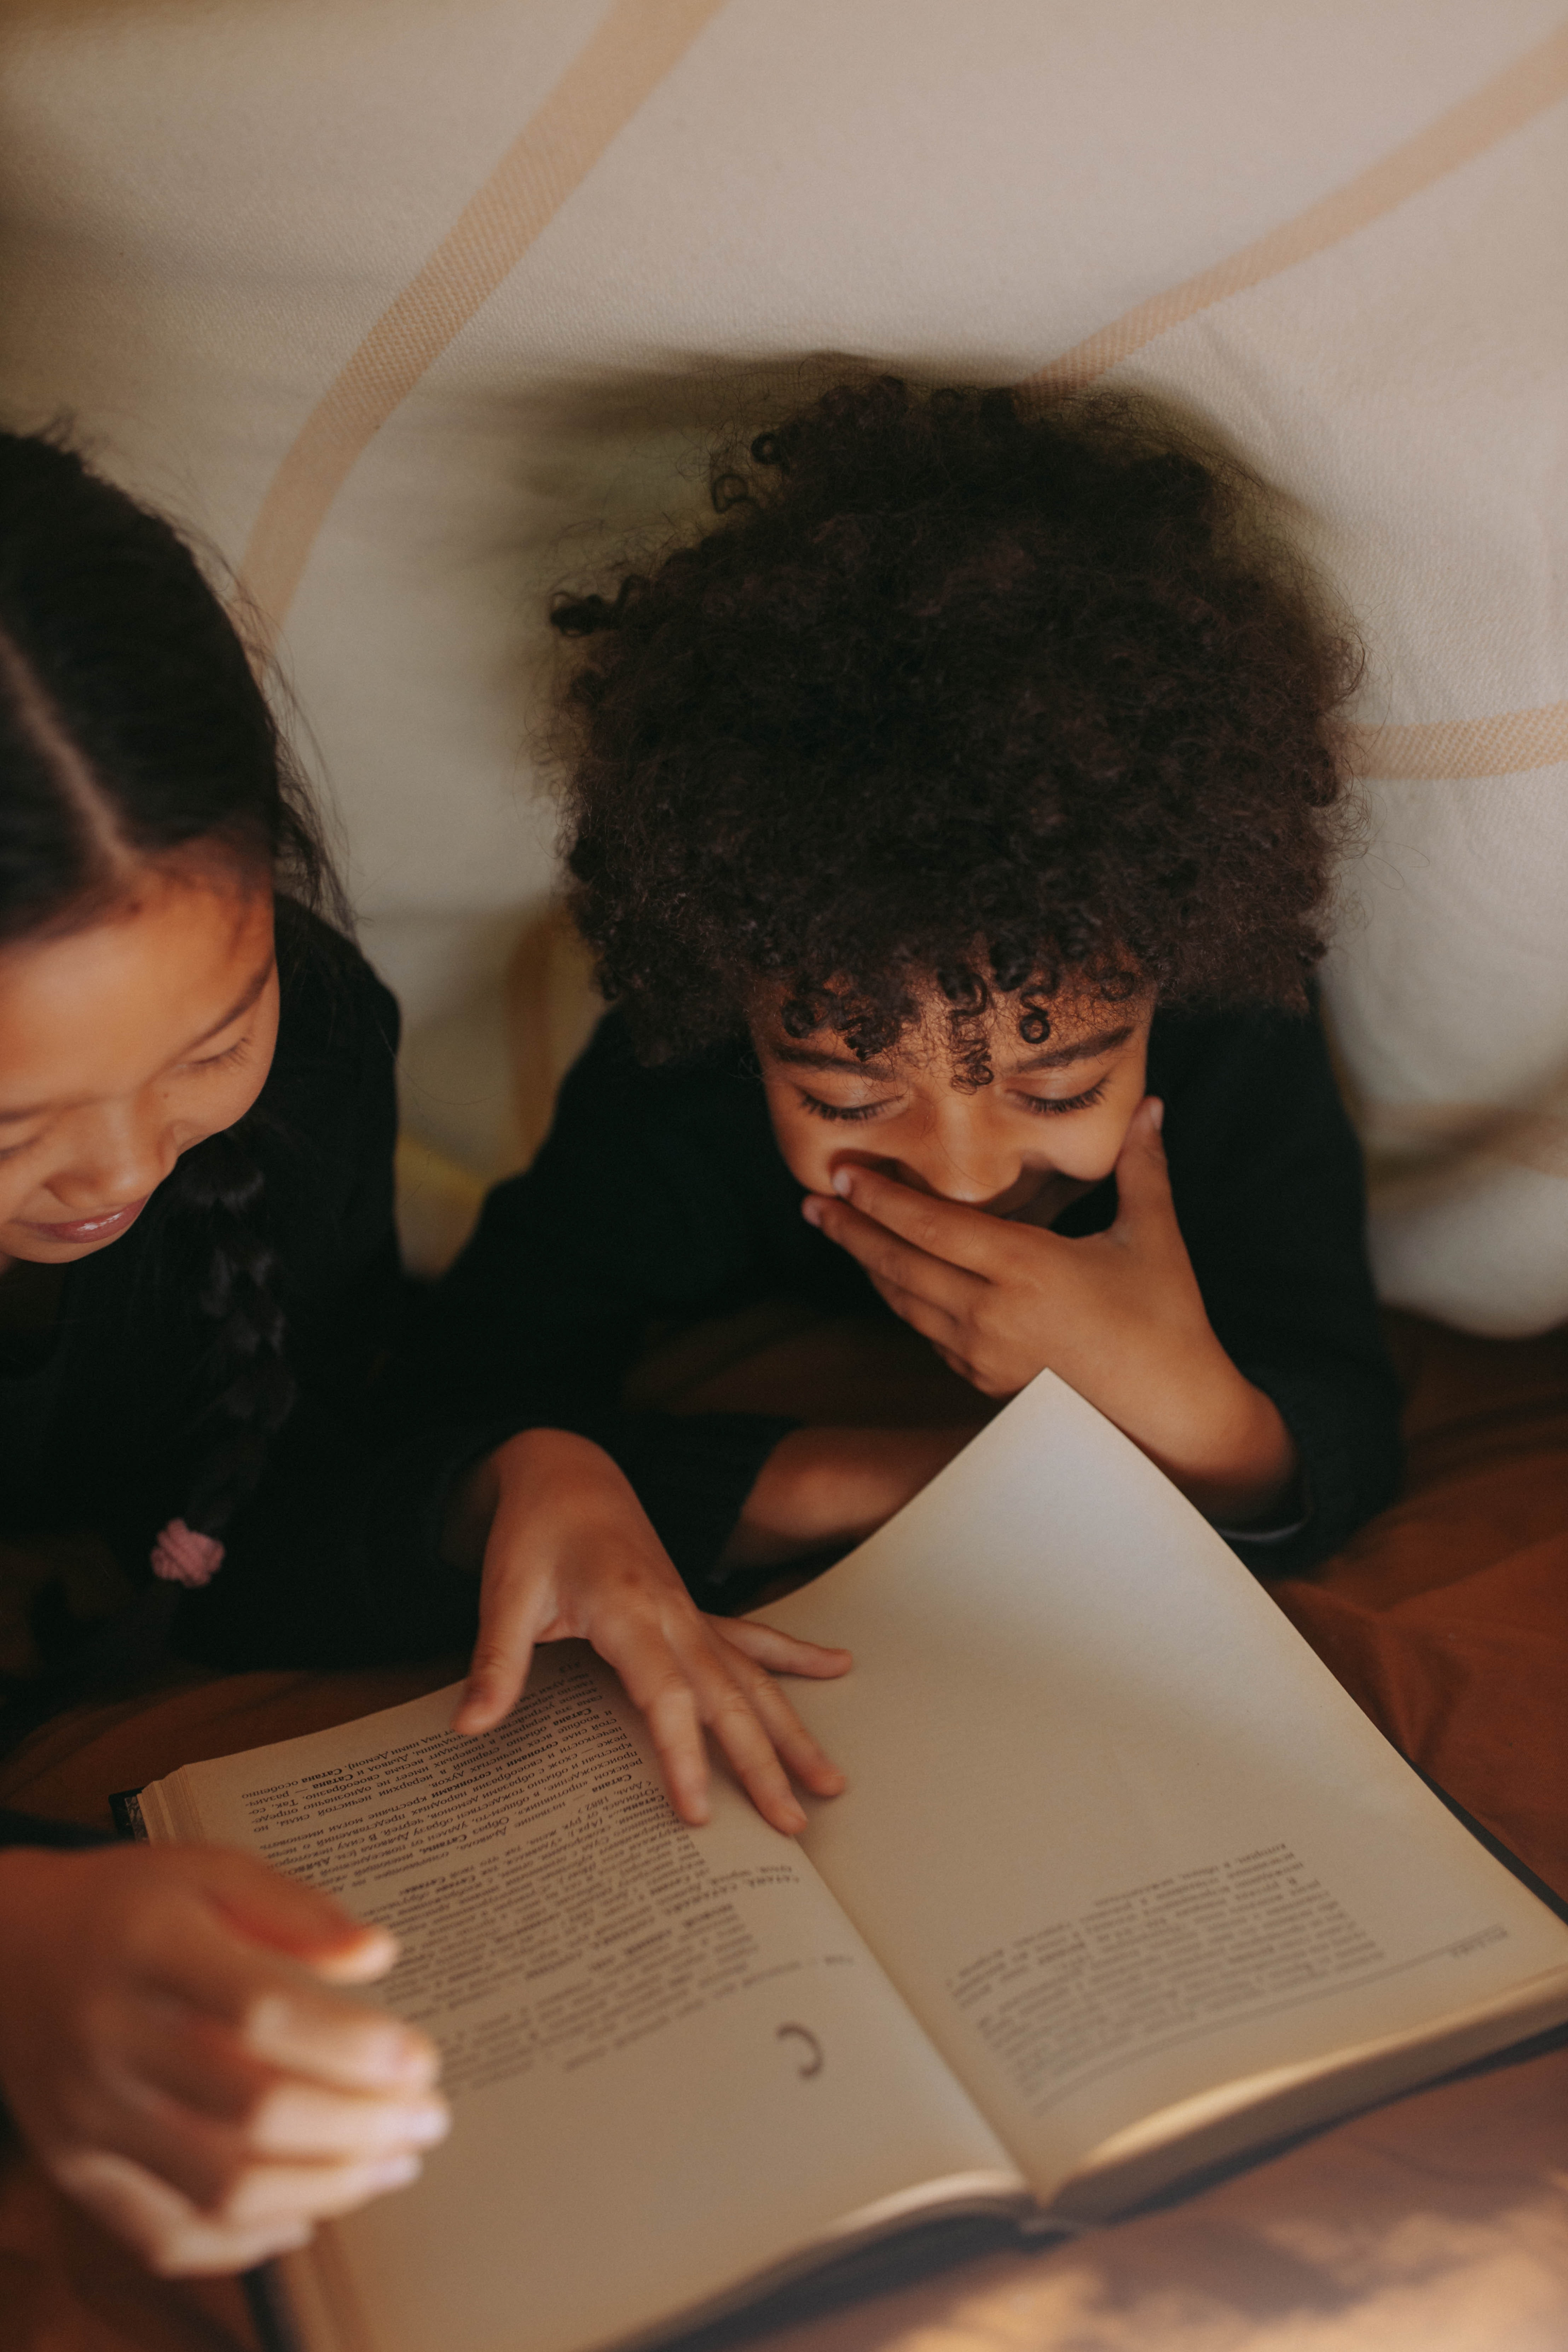 Two children reading in a blanket fort. One child is laughing.